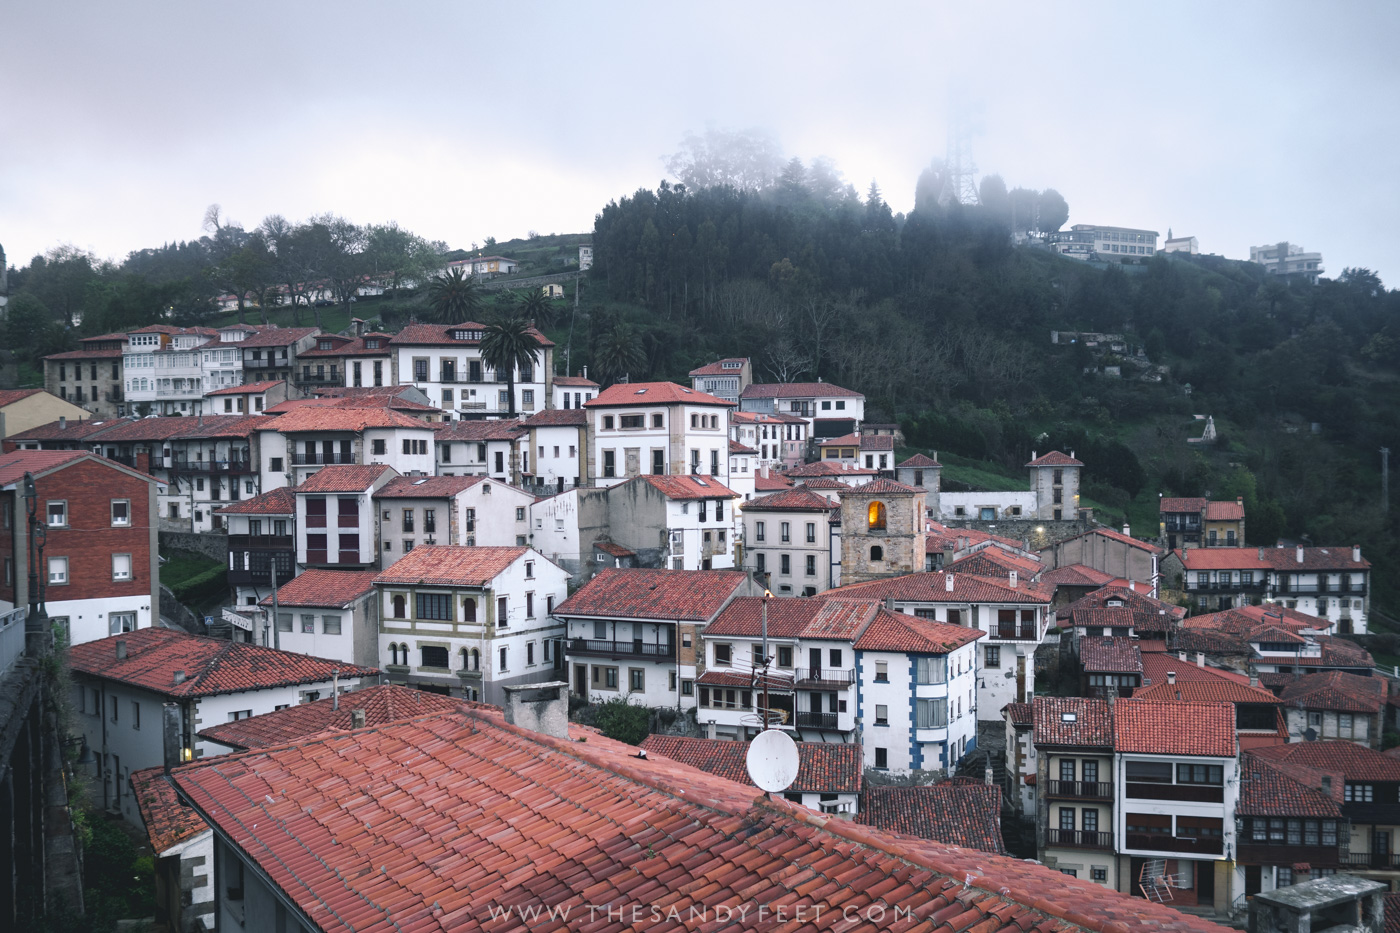 Lastres | A Taste Of Northern Spain: 11 Incredible Places To Visit In Asturias | The Best Things To Do In Asturias, Spain